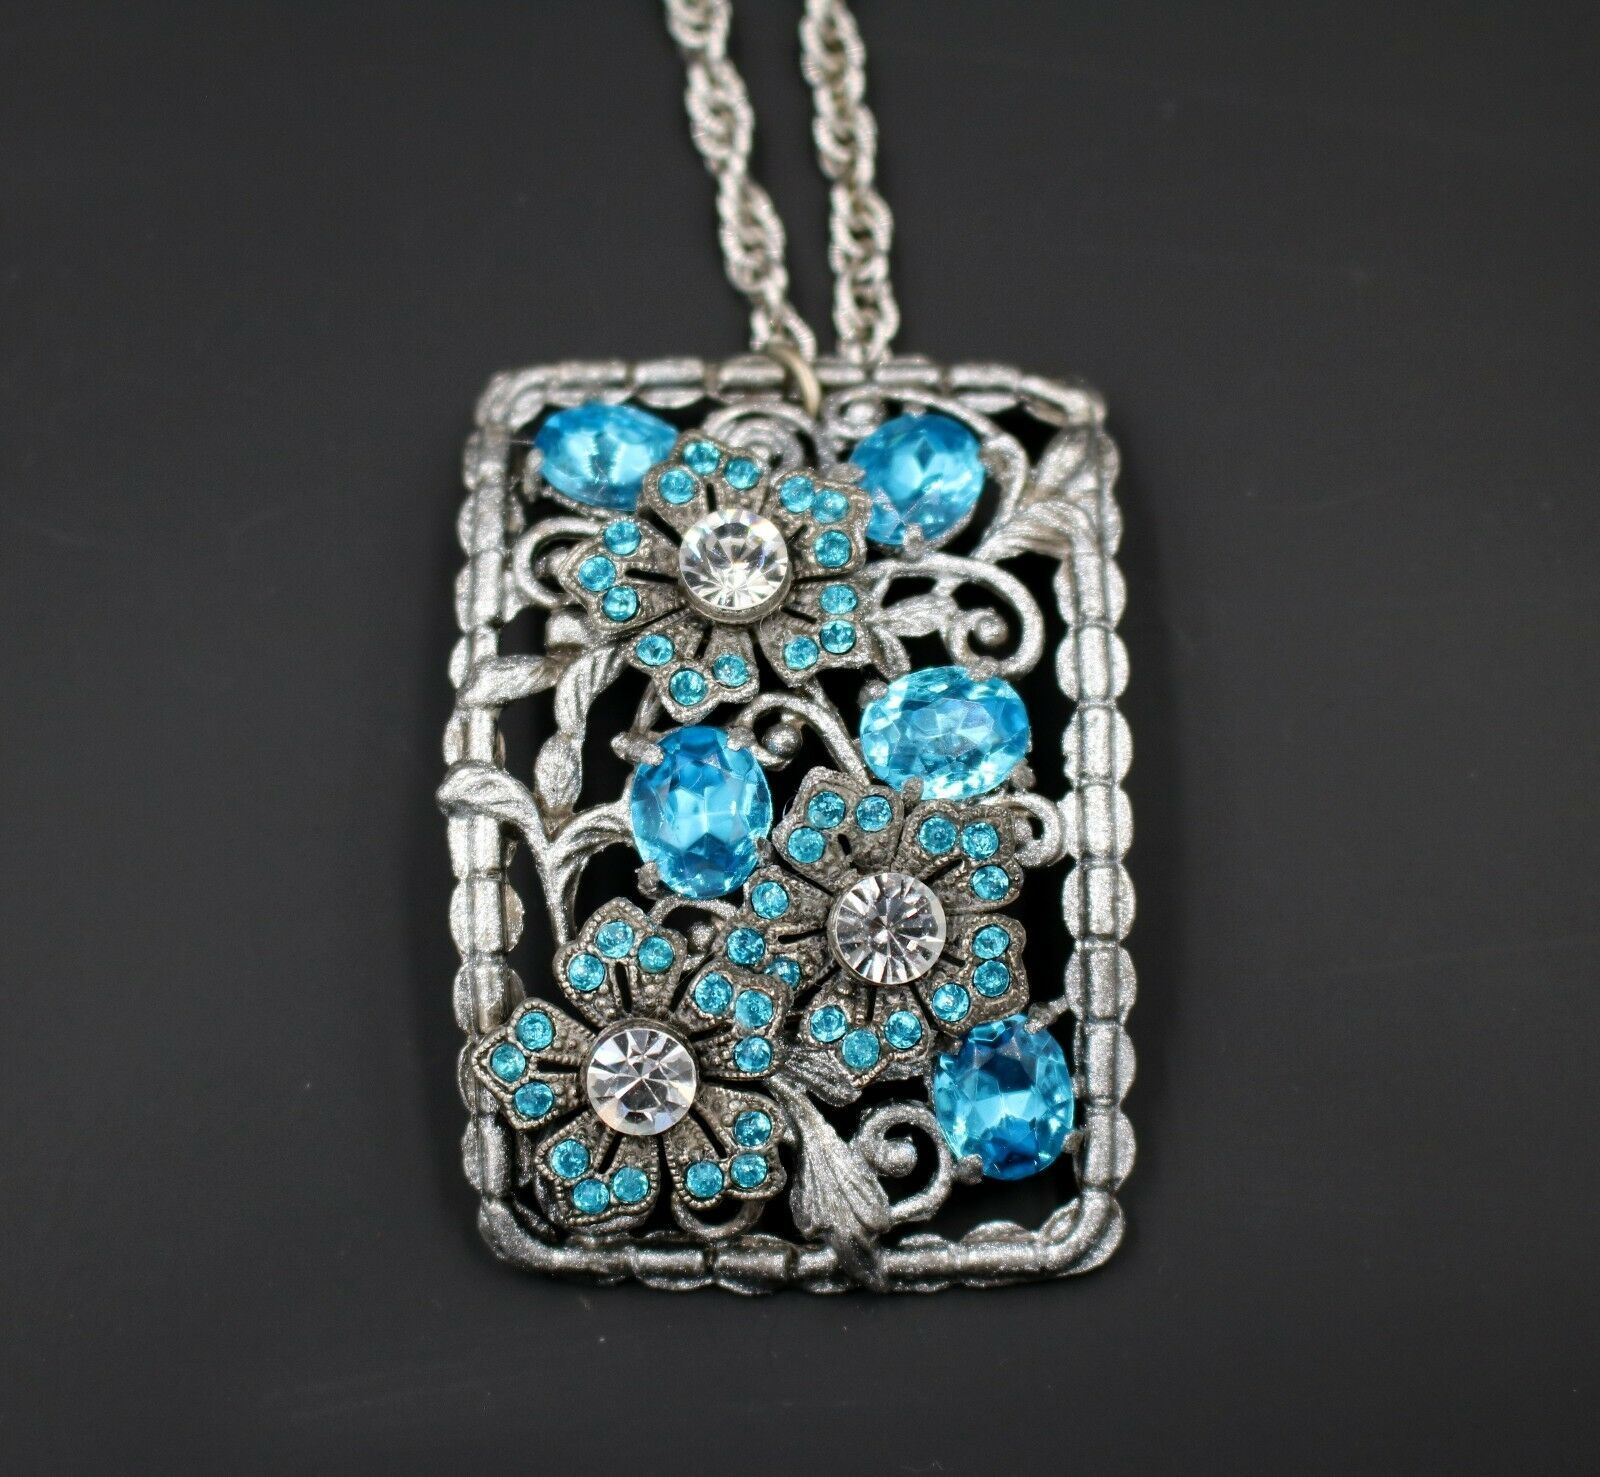 Primary image for Vintage Restore OAK Aqua Made With Swarovski Rhinestone Floral Pendant Necklace